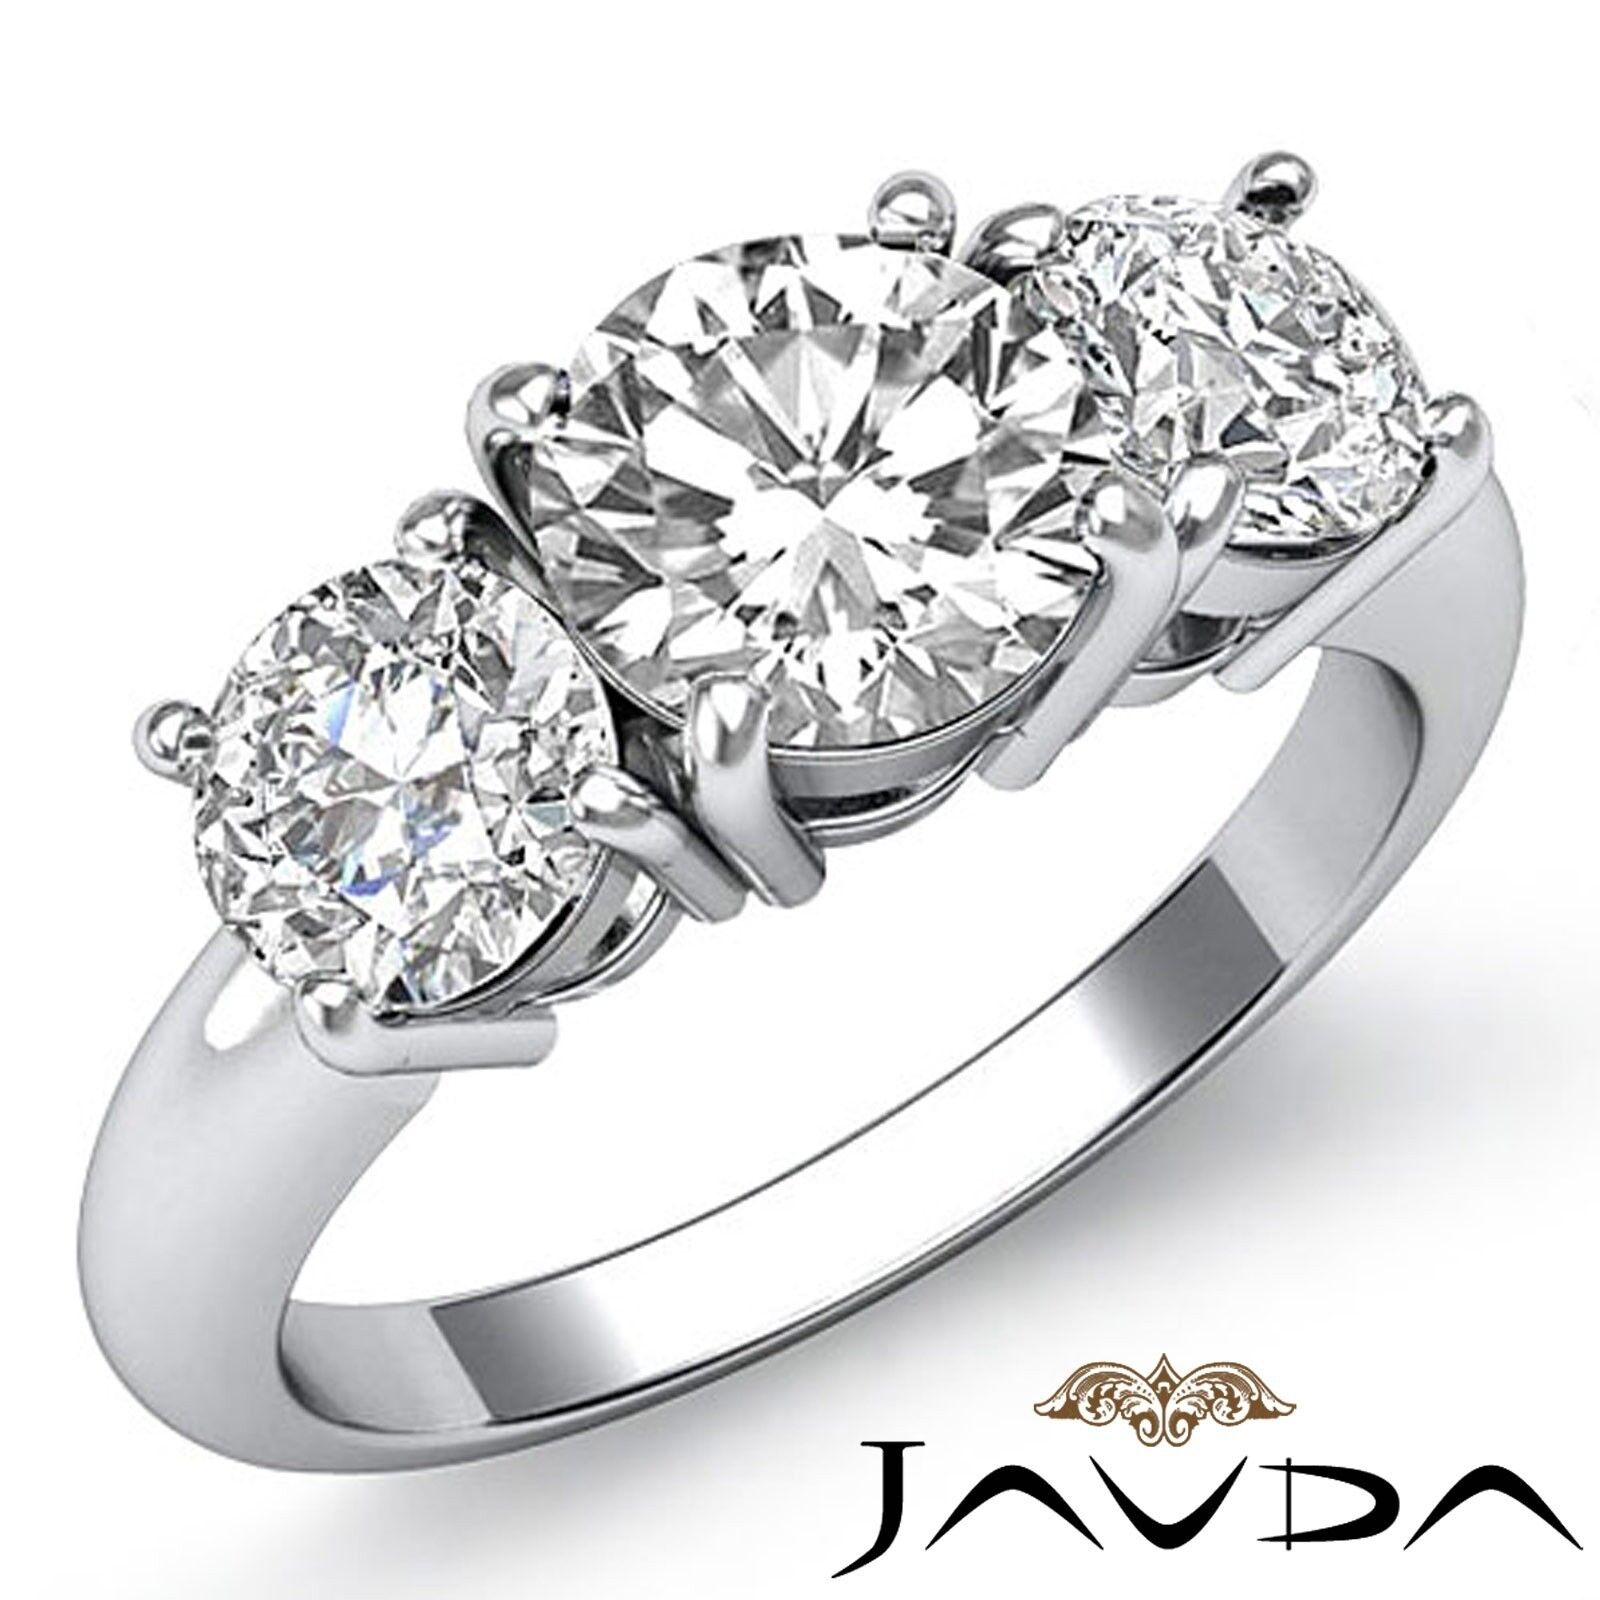 3.25ctw Classic Basket 3 Stone Round Diamond Engagement Ring GIA F-VVS2 W Gold